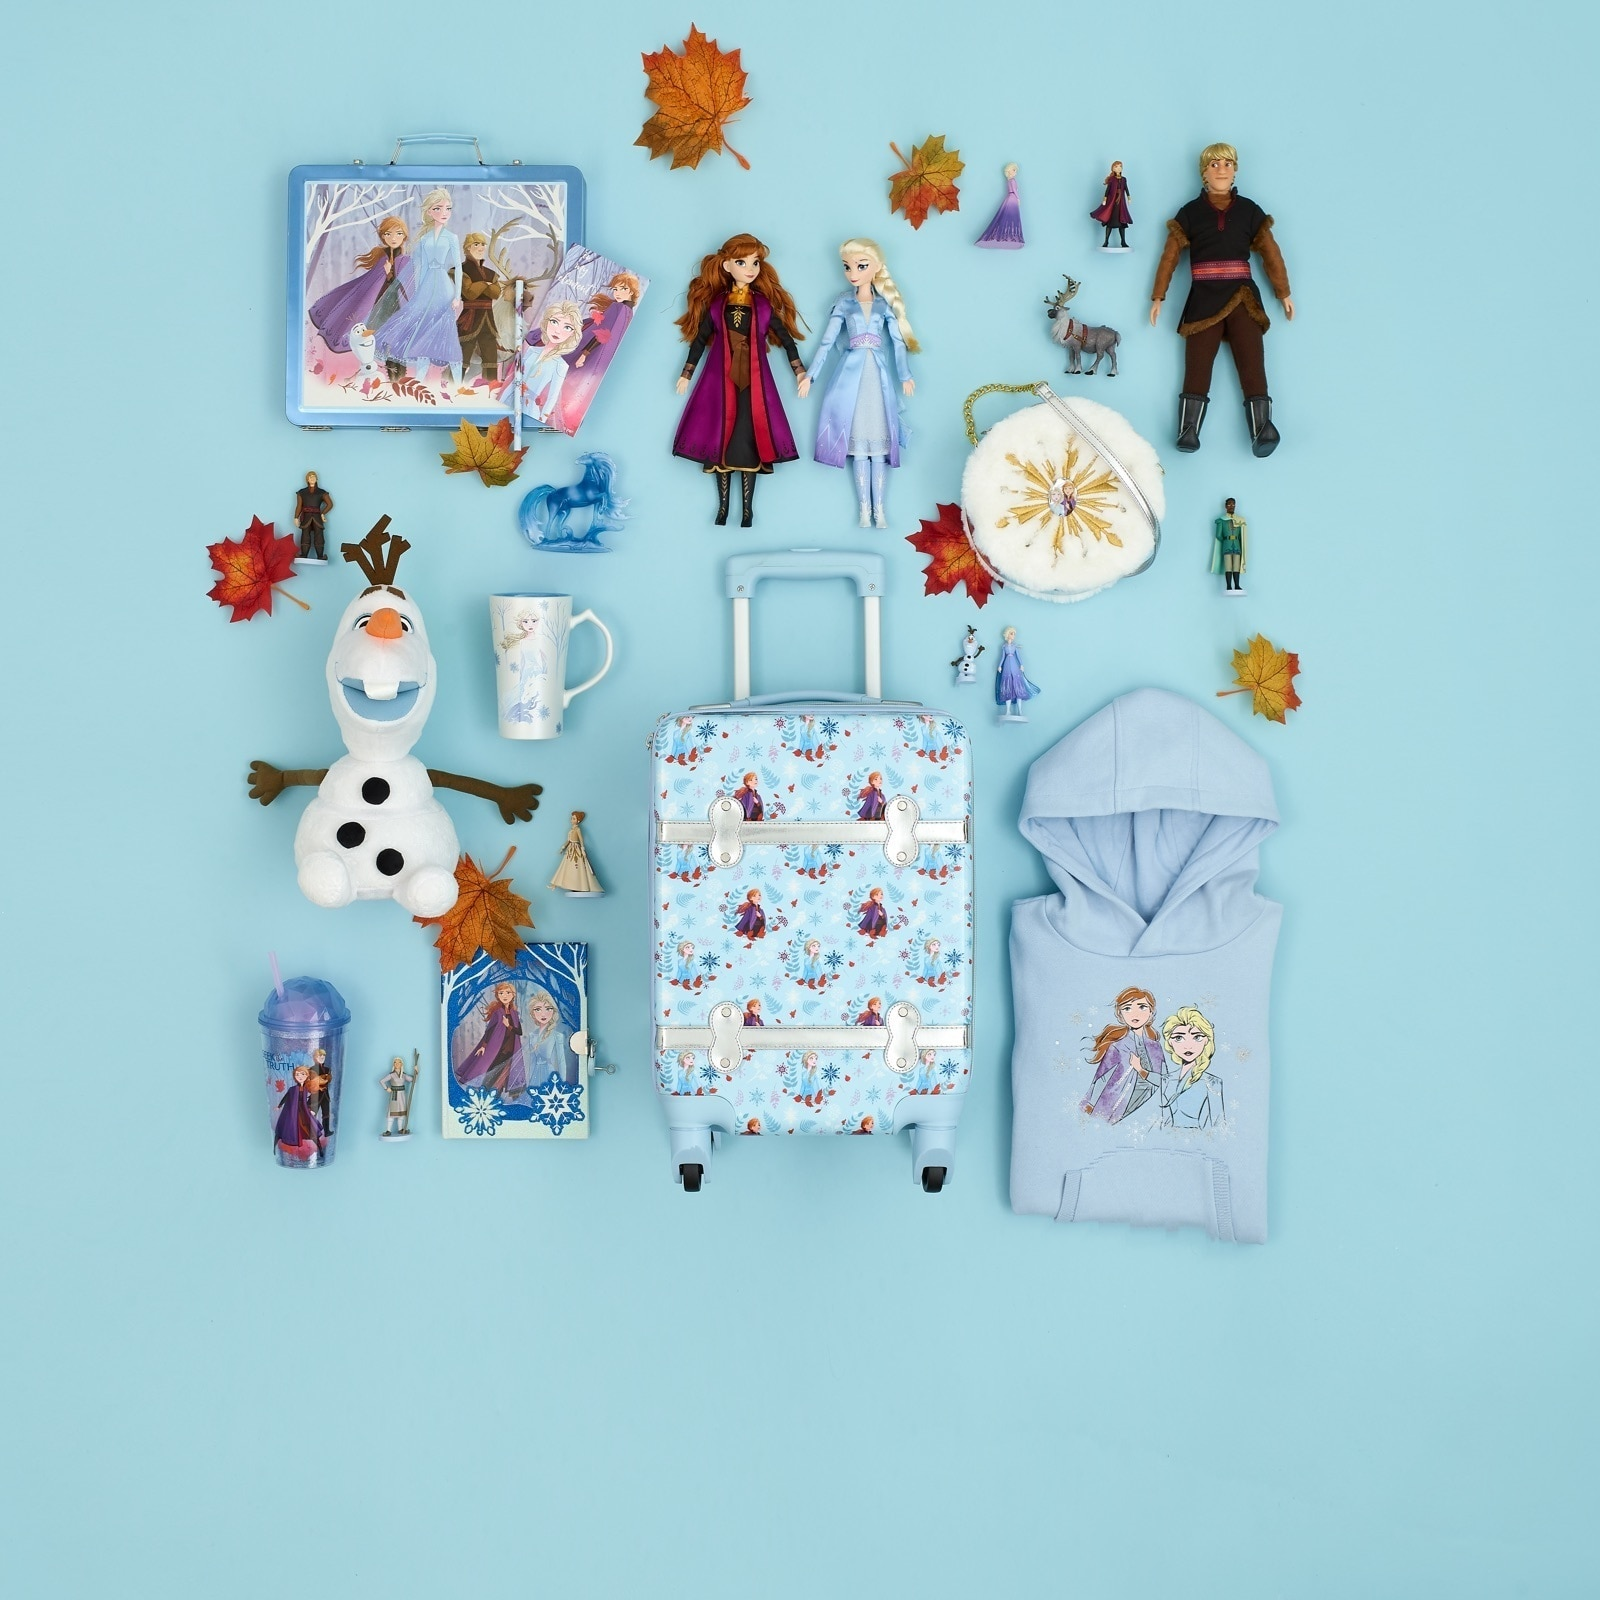 Frozen 2 bij shopDisney